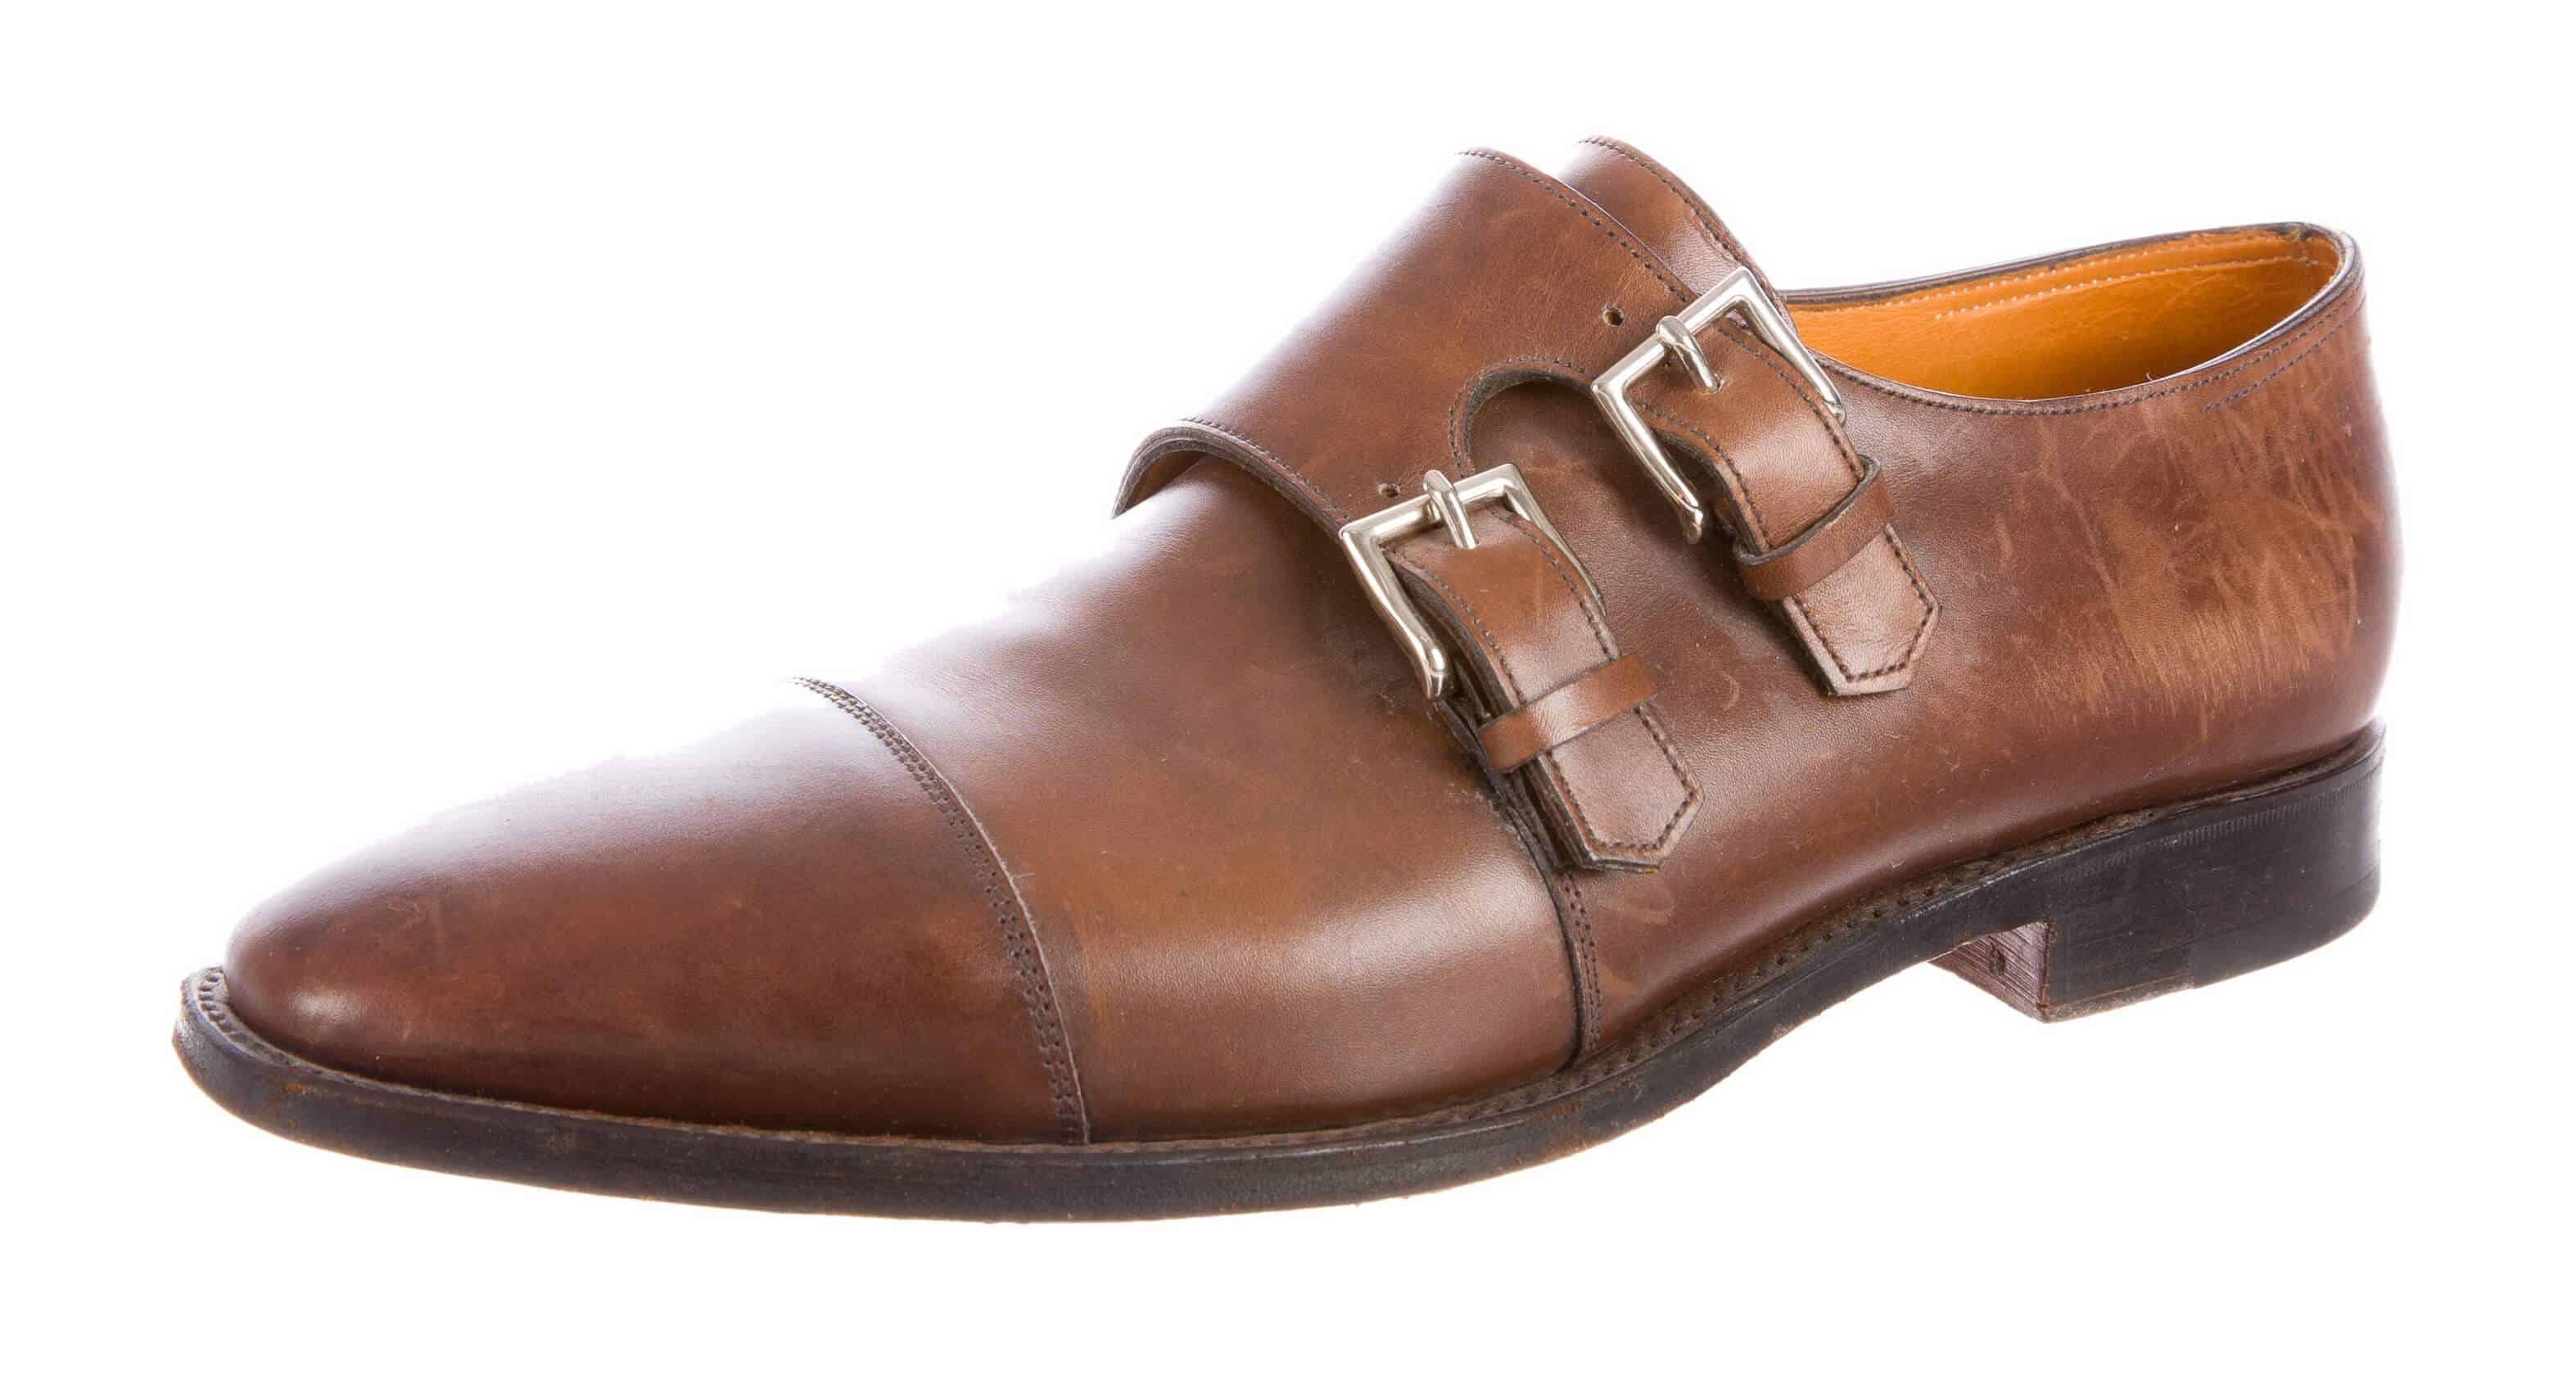 The double monk strap shoe found great popularity in Europe. Specifically, the monks were most notably known to wear these shoes during this era, which resulted in the naming of the shoe. Monks wore these shoes for the additional level of protection they offered compared to the sandals they normally wore.